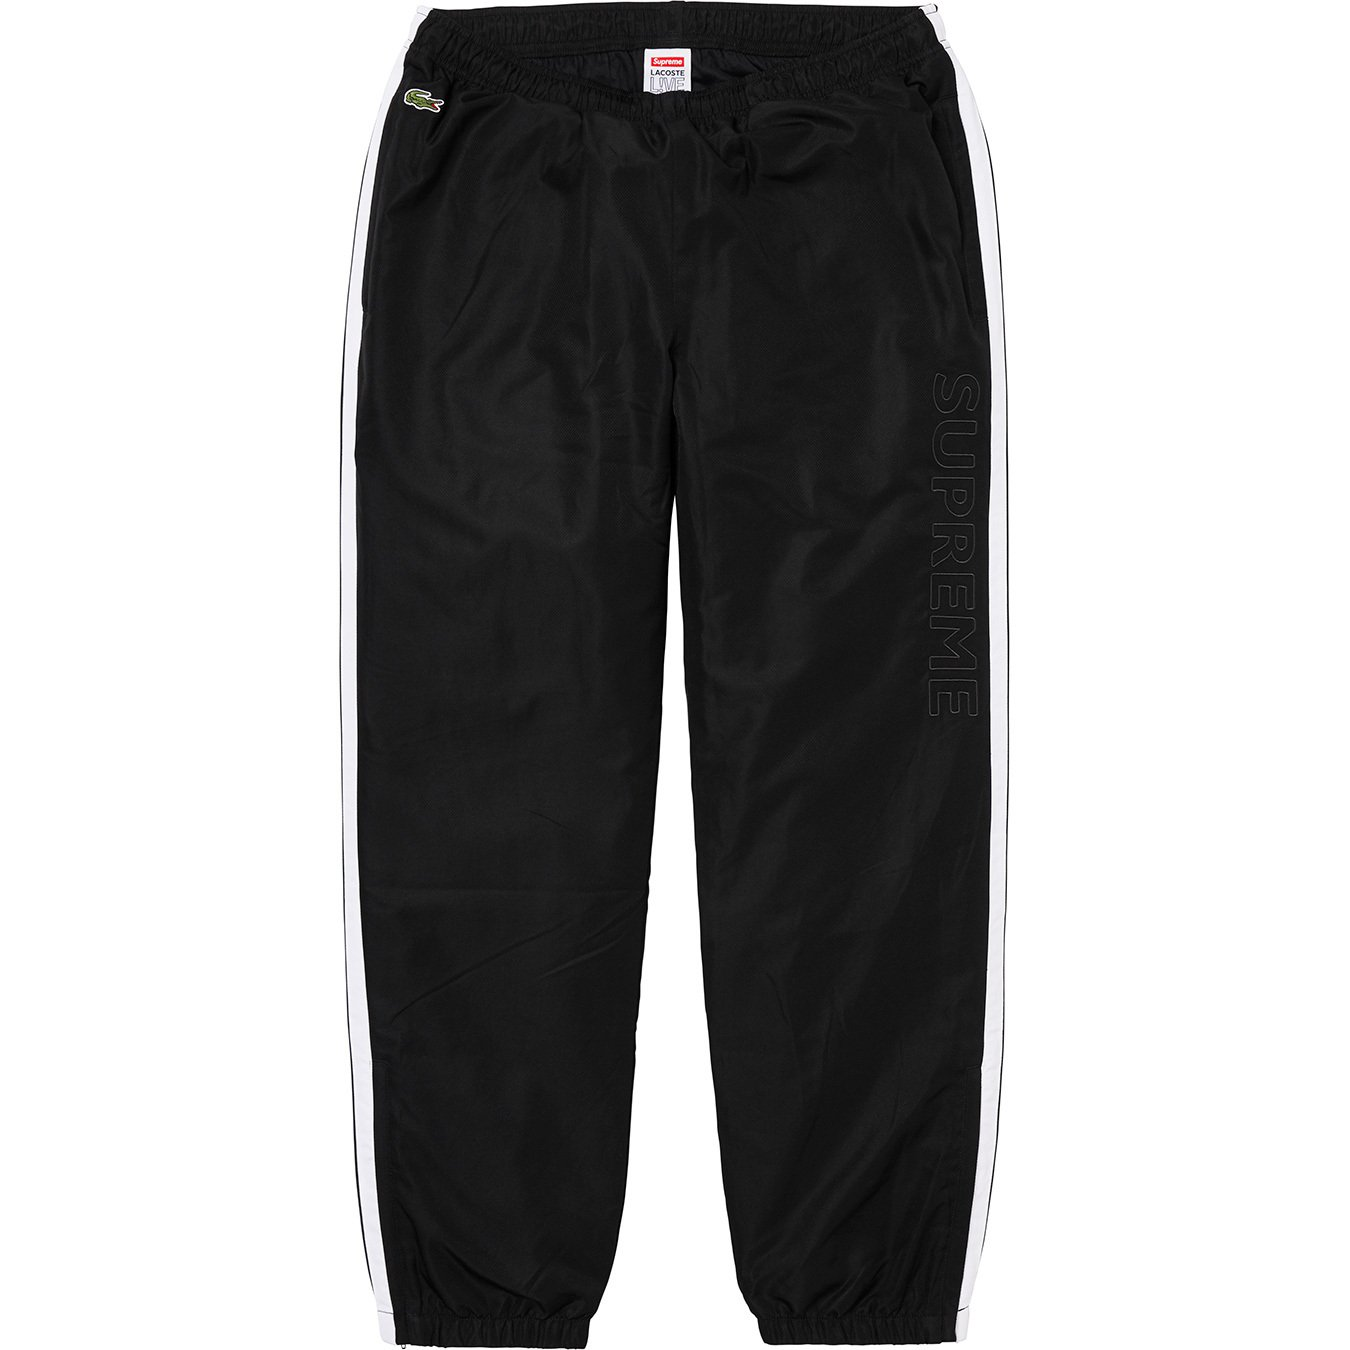 supreme-lacoste-19aw-19fw-collaboration-release-20190928-week5-track-pant